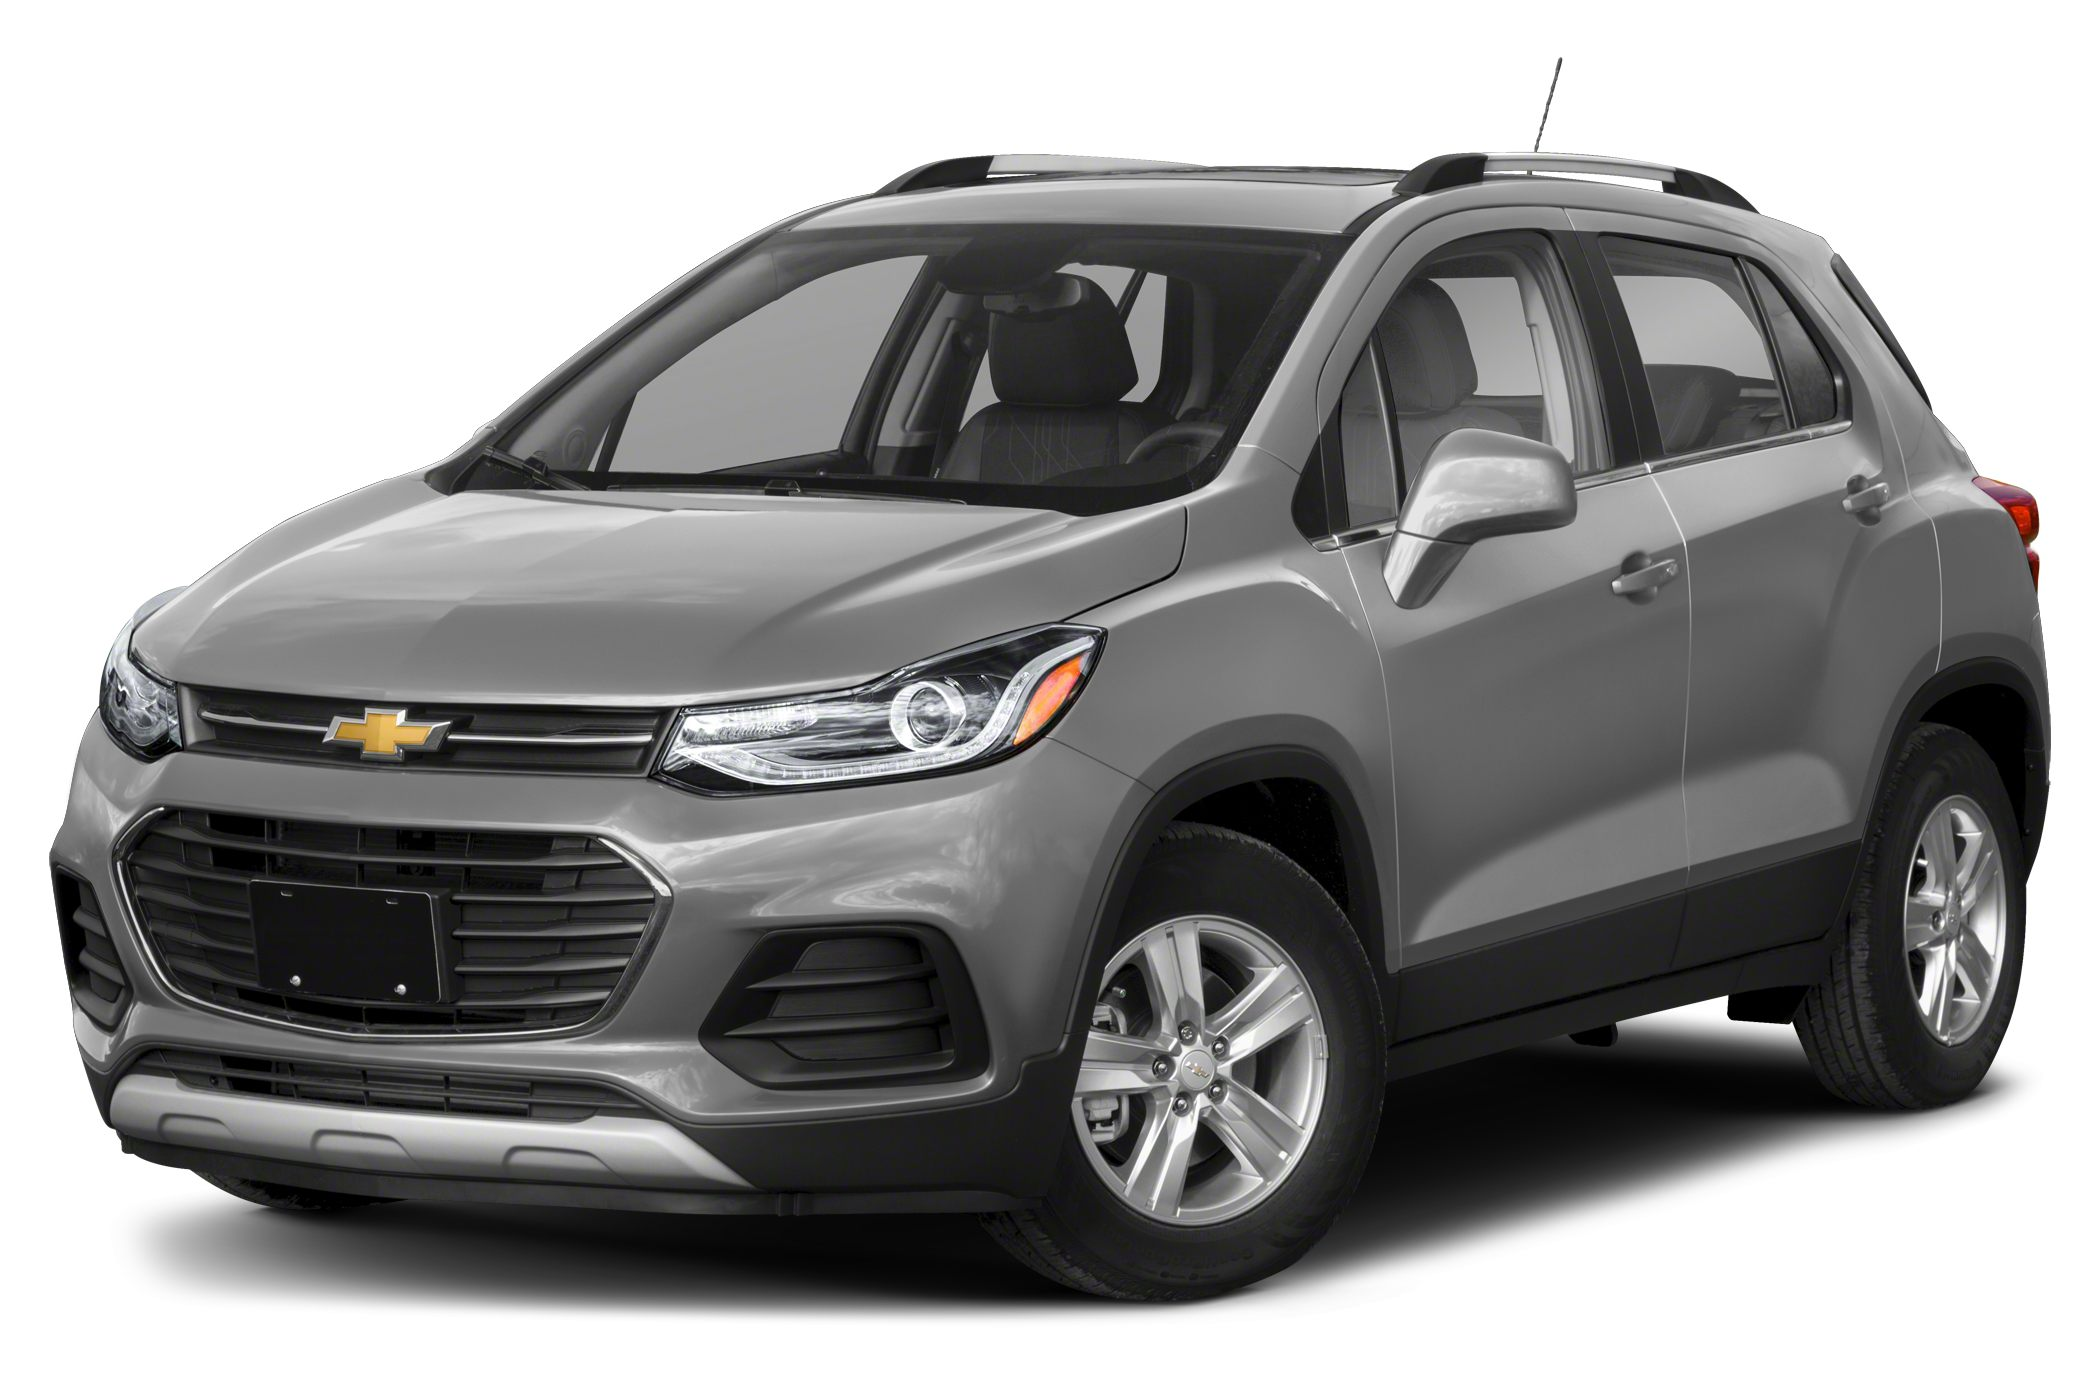 2022 Chevrolet Trax Lt All Wheel Drive Specs And Prices